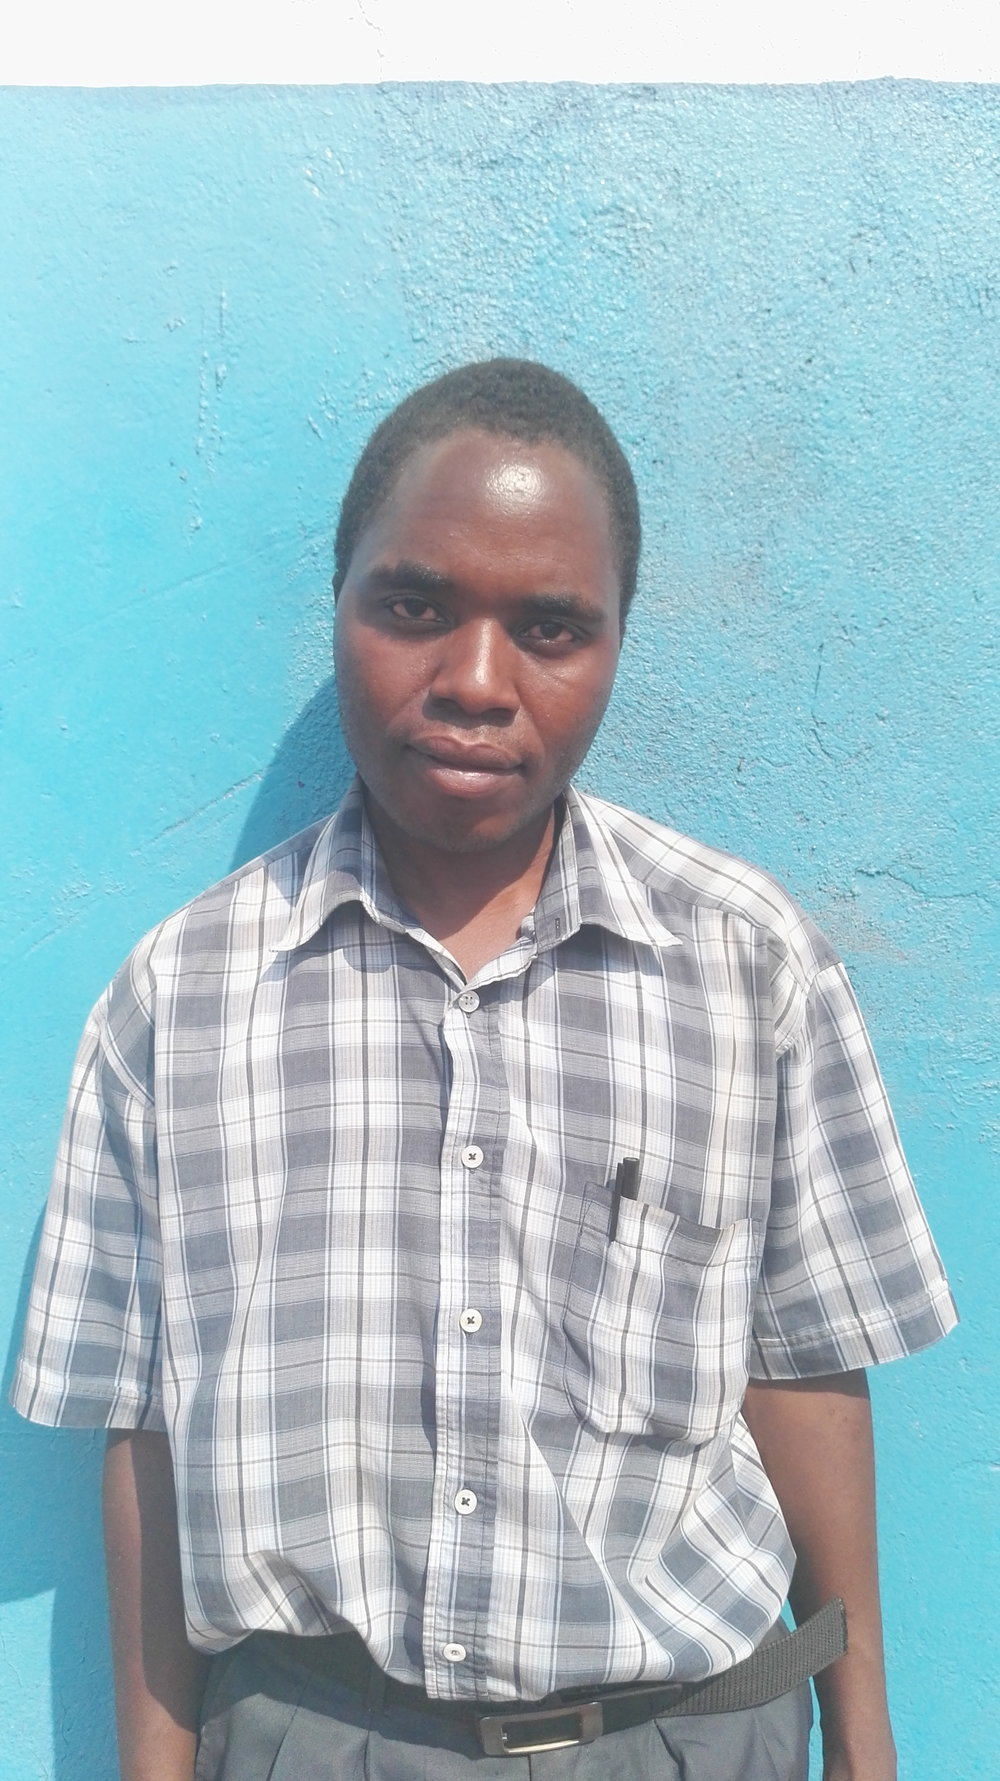 Petros Banda, Teacher Supervisor Katete    Petros Banda is the Teacher Supervisor for Zone B. He joined Impact Network in 2010 as a grade 1 teacher at Kanyelele and is the longest employed teacher at Impact Network. During his time at Impact Network he has worked with grades 1-5. He became a Teacher Supervisor in 2016, during term 2.